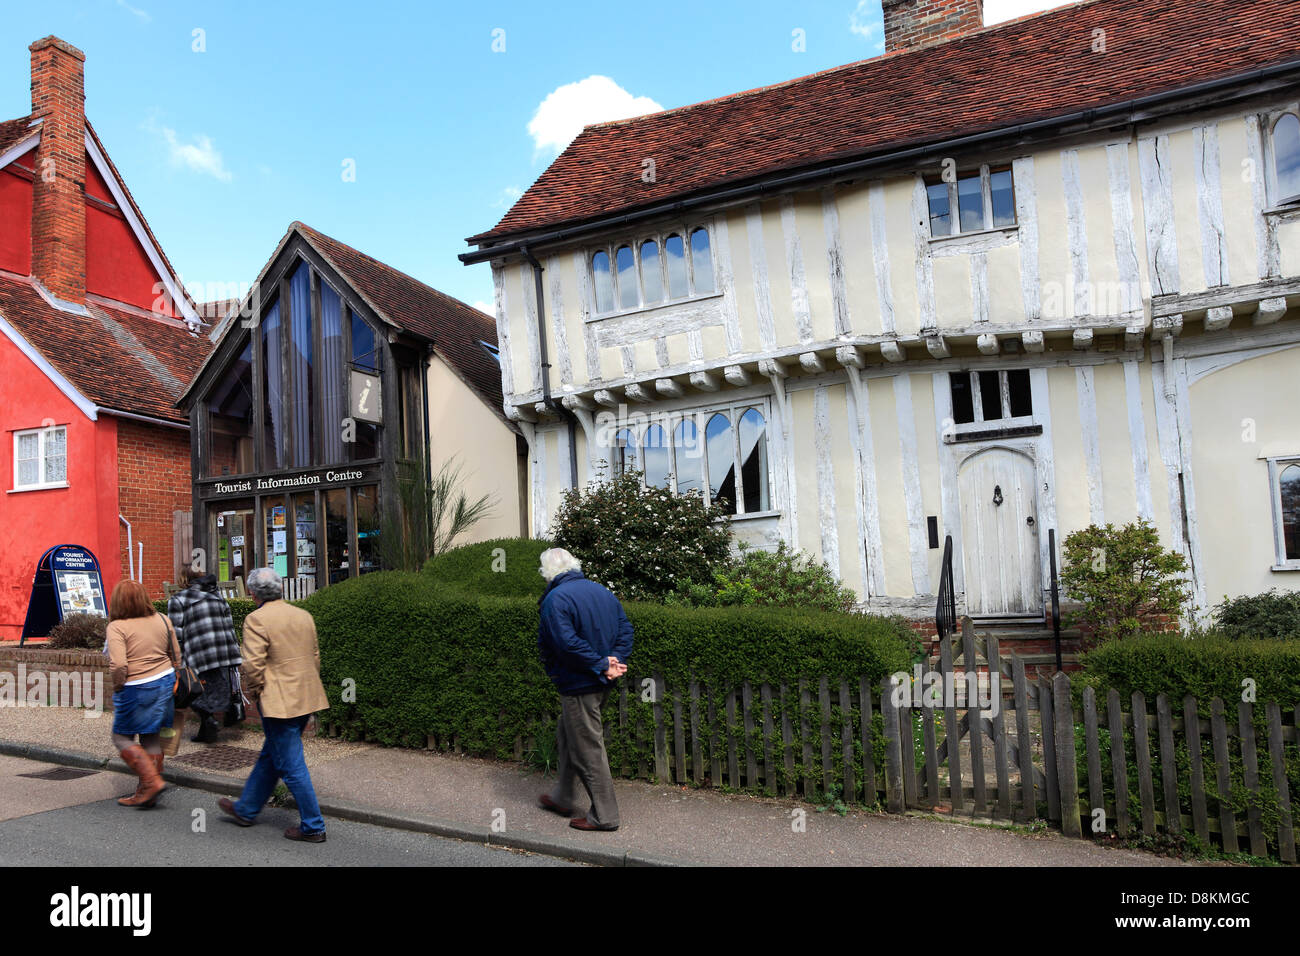 Tourist Information Centre, Lavenham village, Suffolk County, England, Britain. - Stock Image